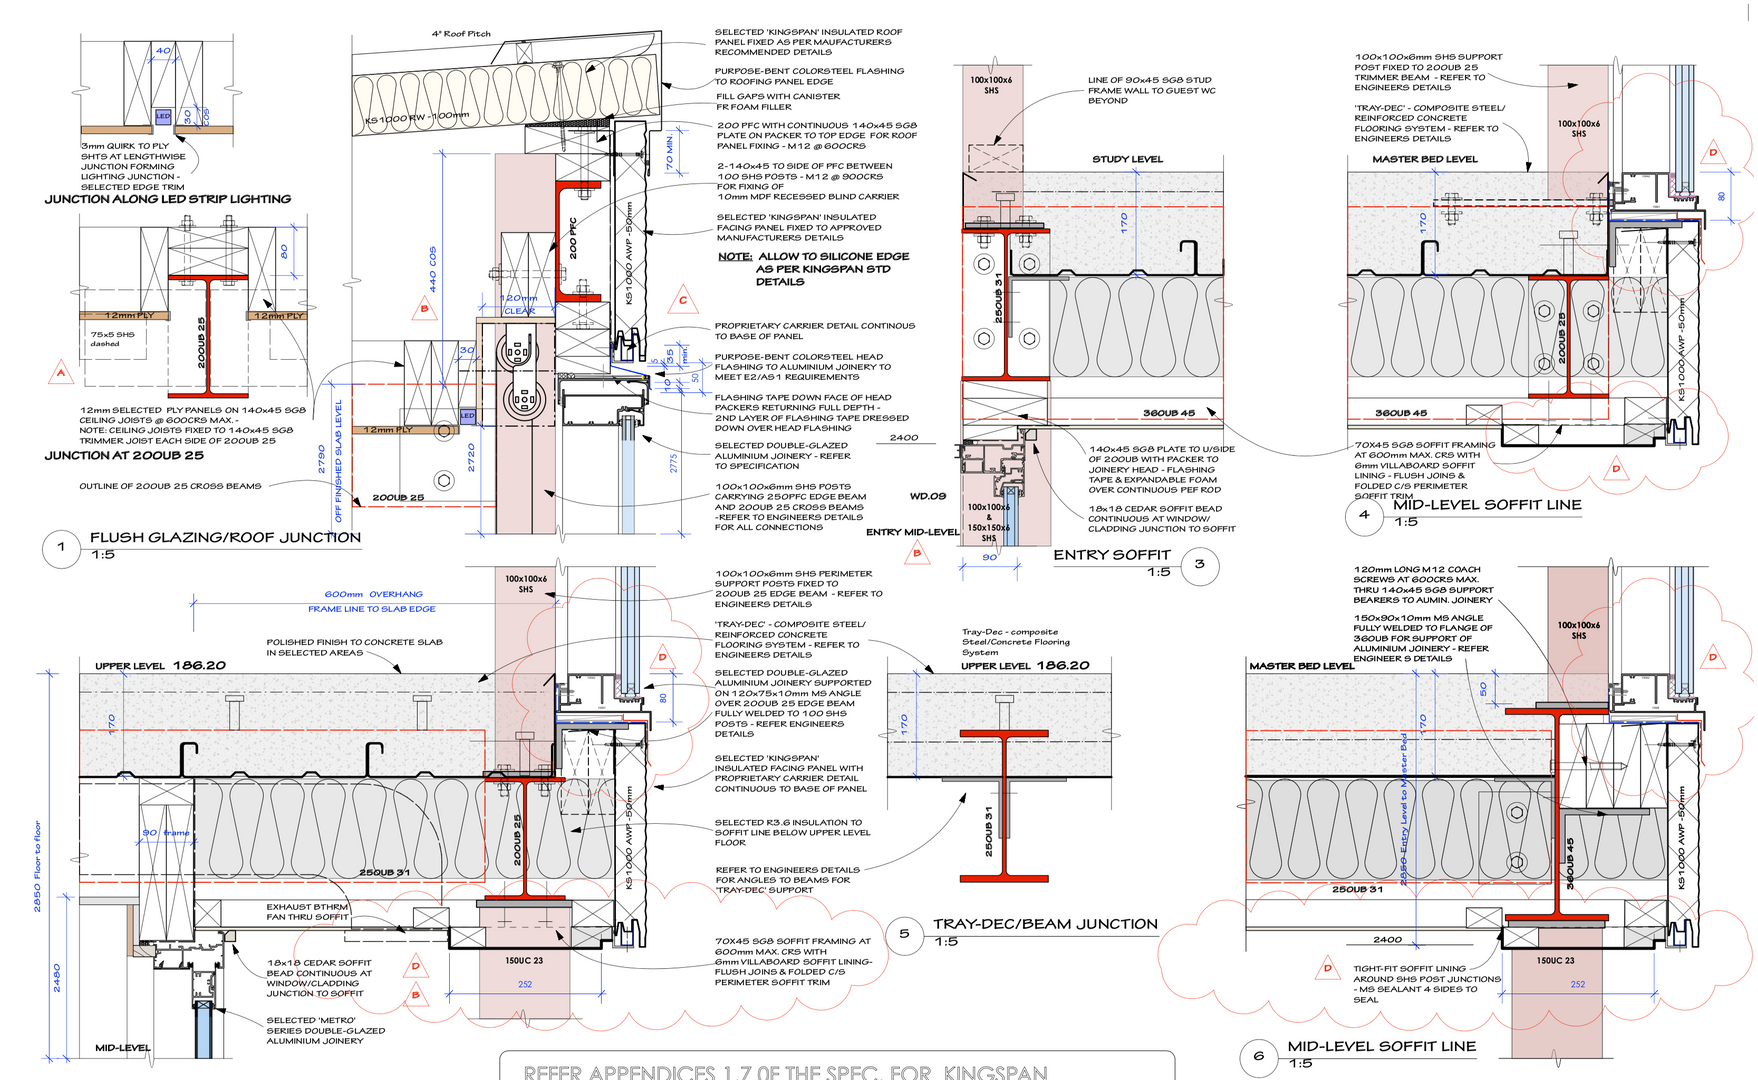 Kingspan, Concrete & Steel House Drawings